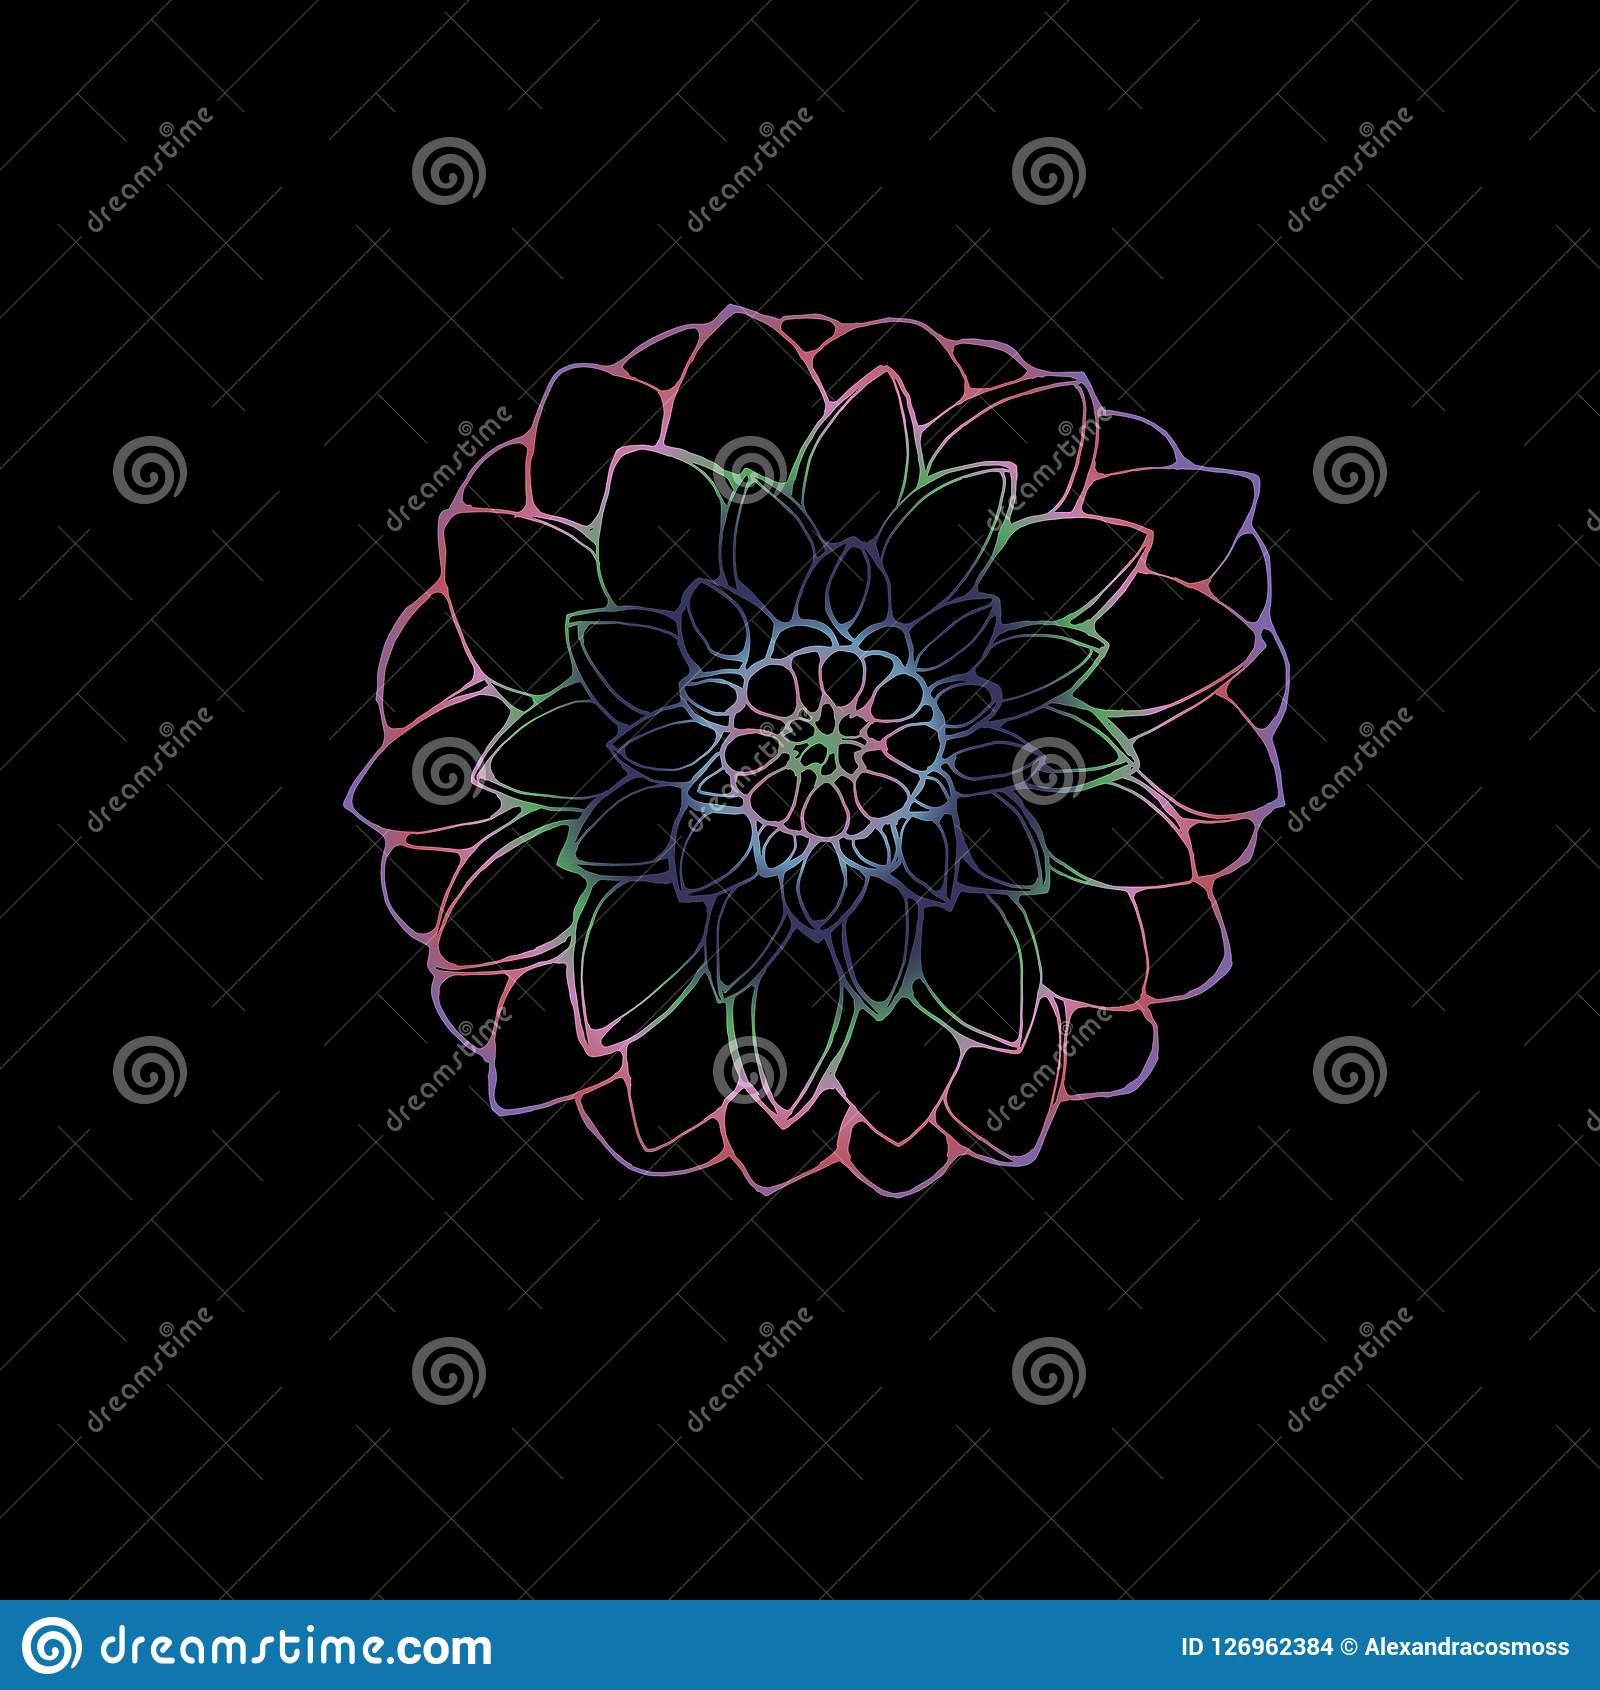 Neon Picture Of A Dahlia Flower The Idea For A Tattoo Stock Vector